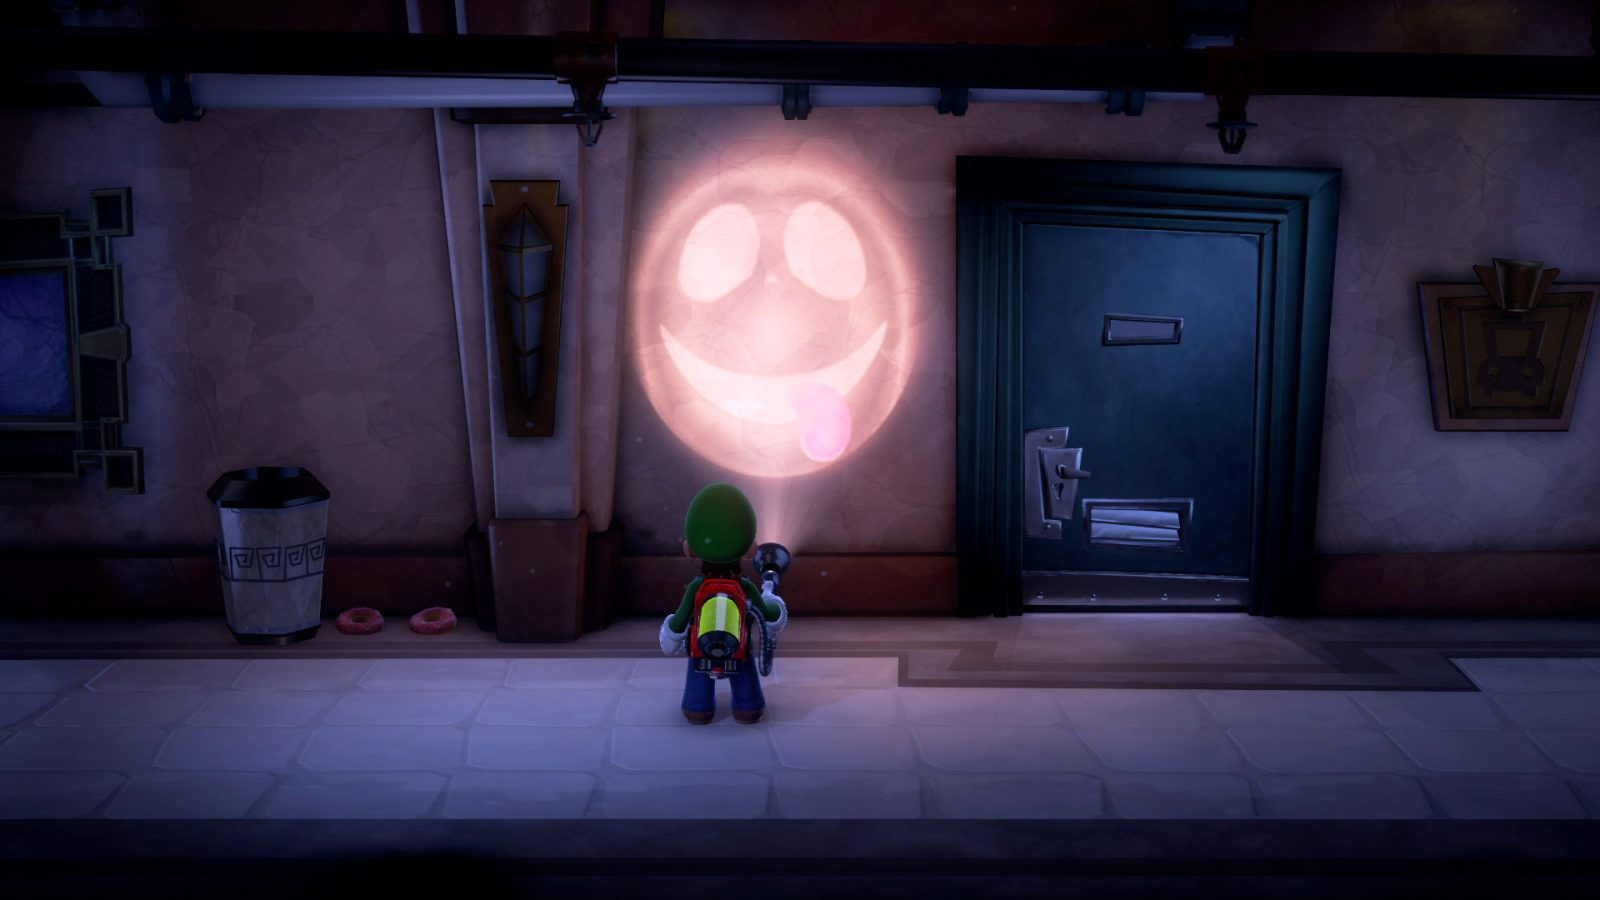 Luigi S Mansion 3 To Get Two Paid Dlc Expansions In 2020